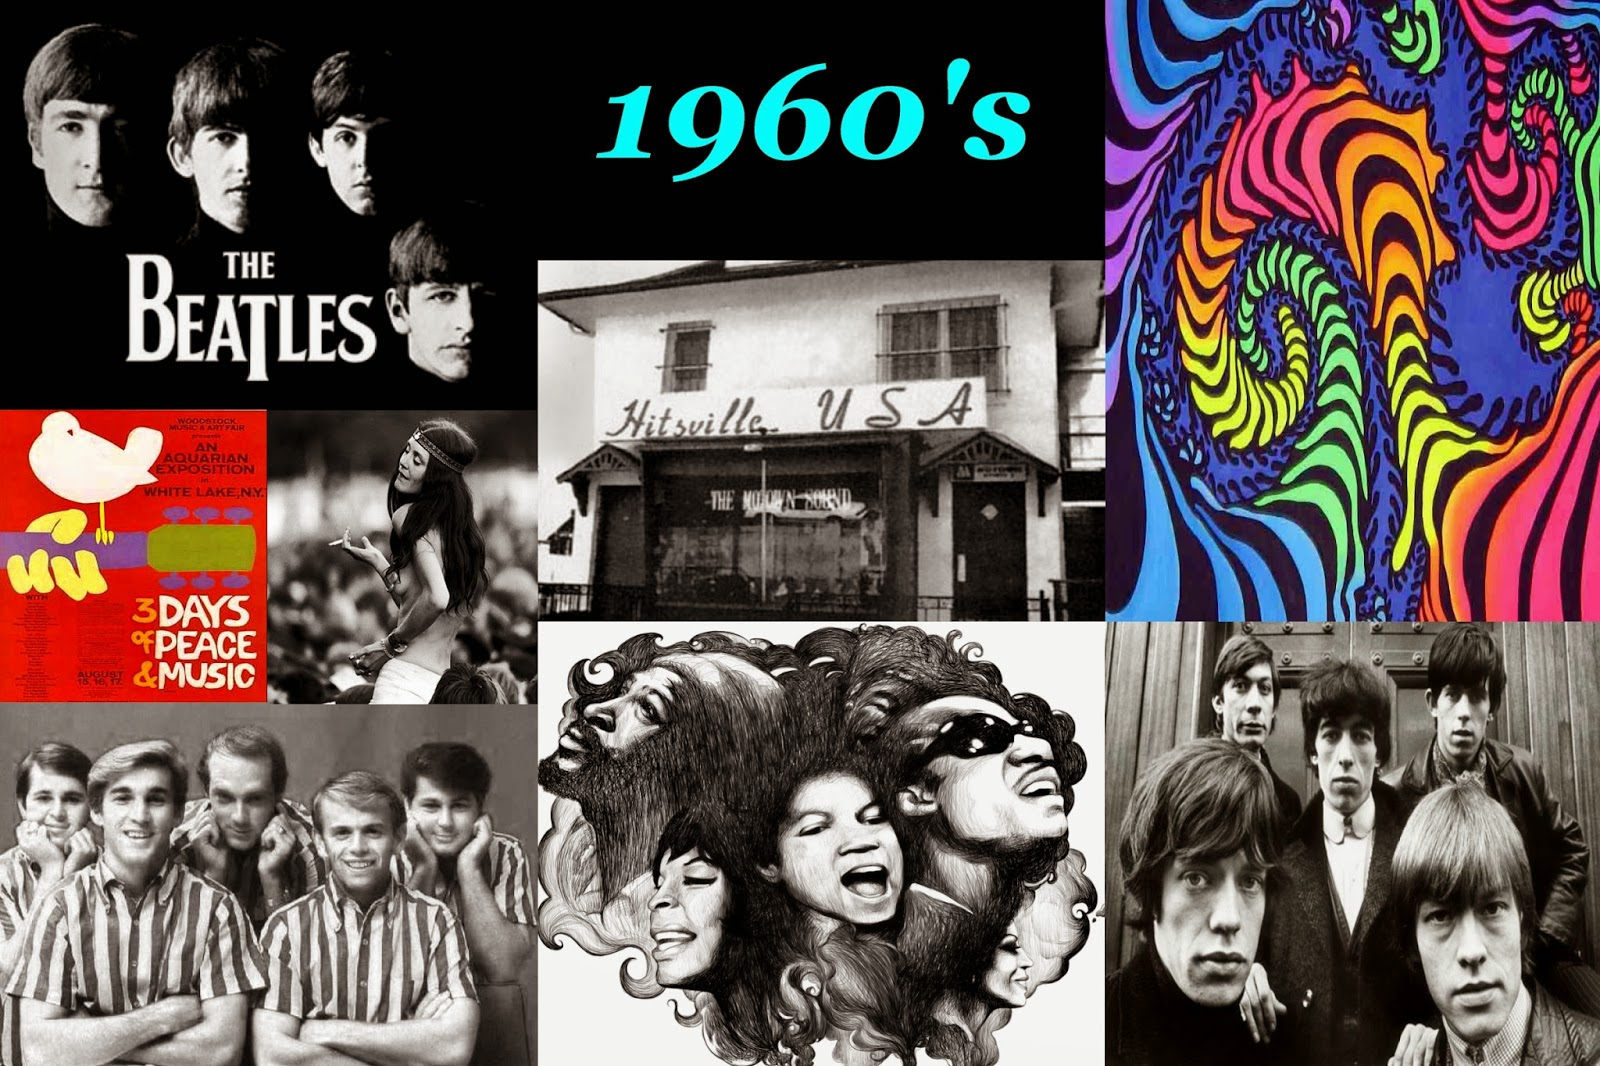 1960's and 1970's classic rock In the mid-1960's john hood, inspired by the rolling stones and their blues influences, commenced a musical journey that continues to this day.